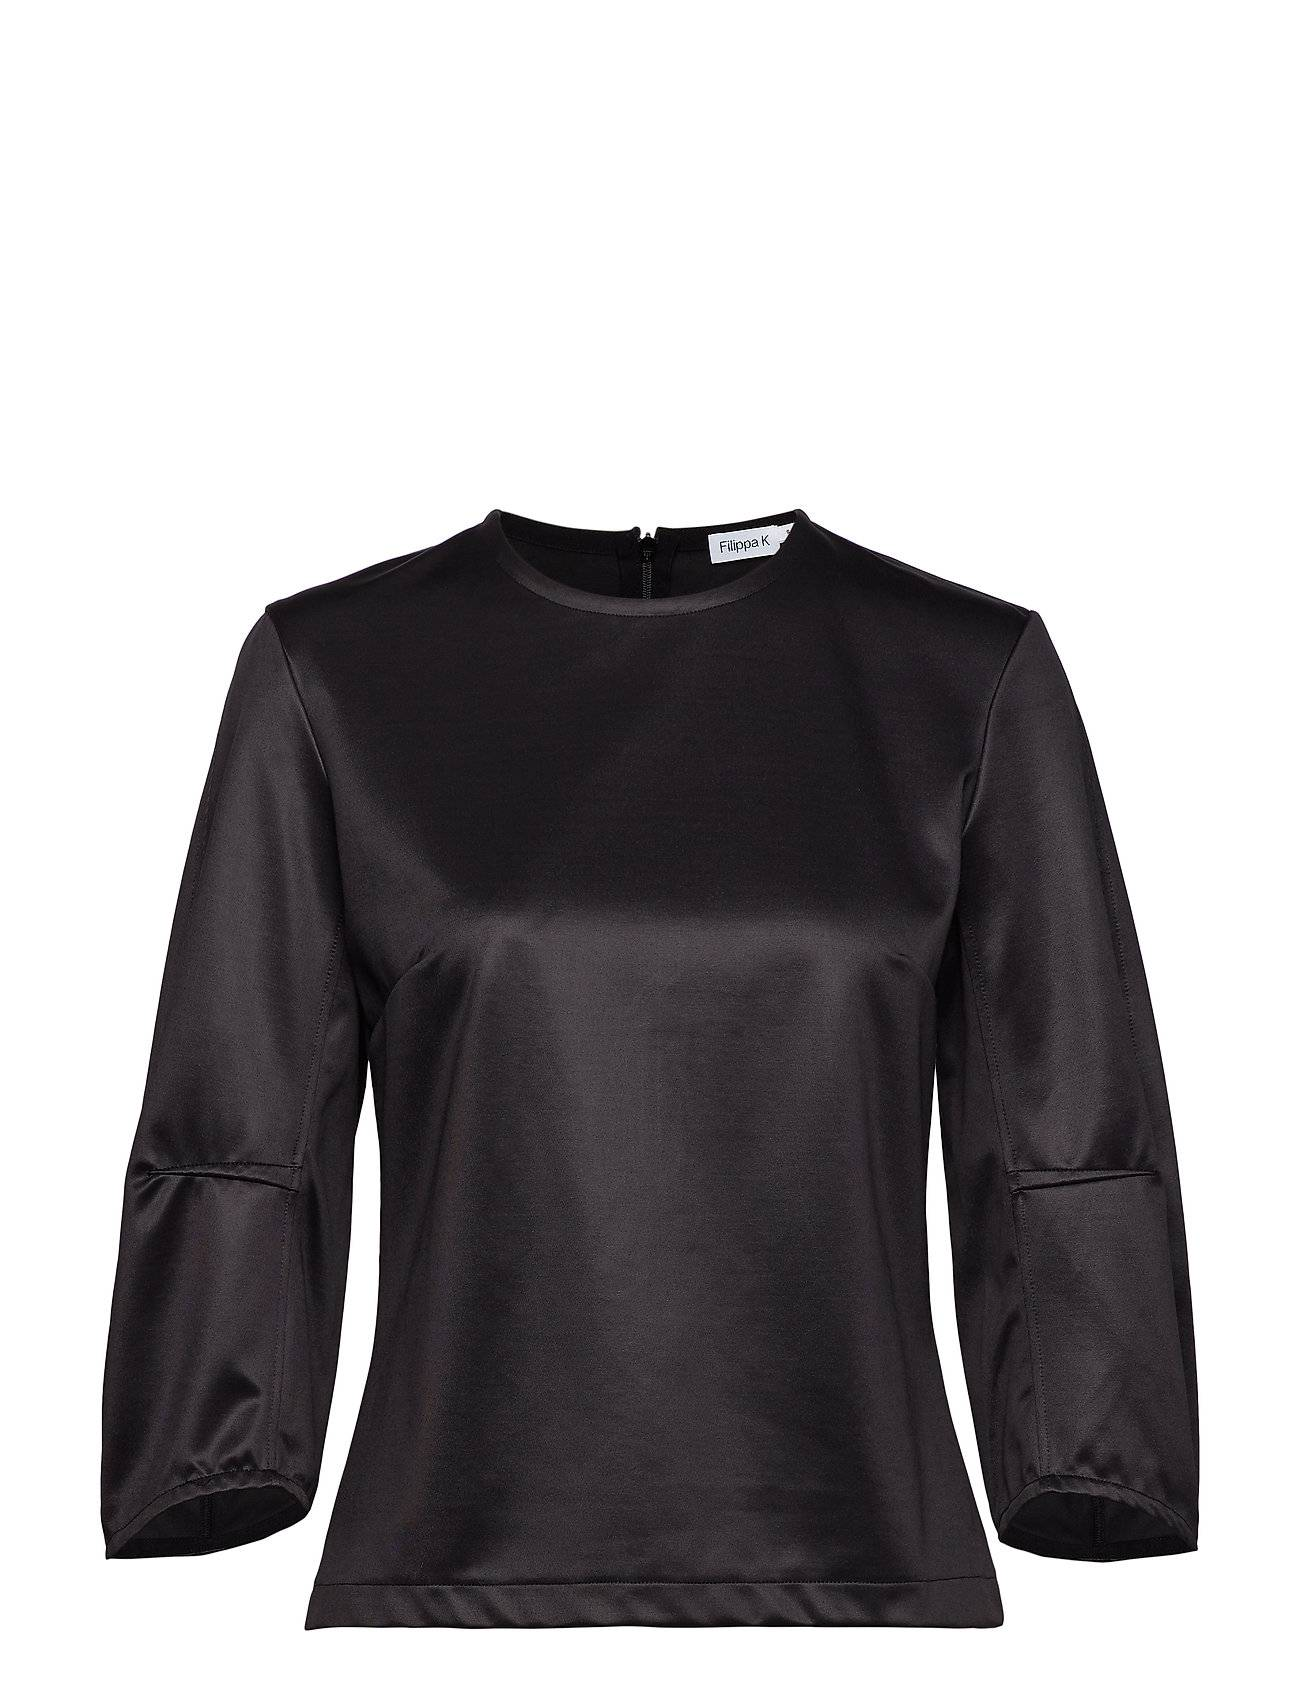 Filippa K Sculptural Sleeve Top